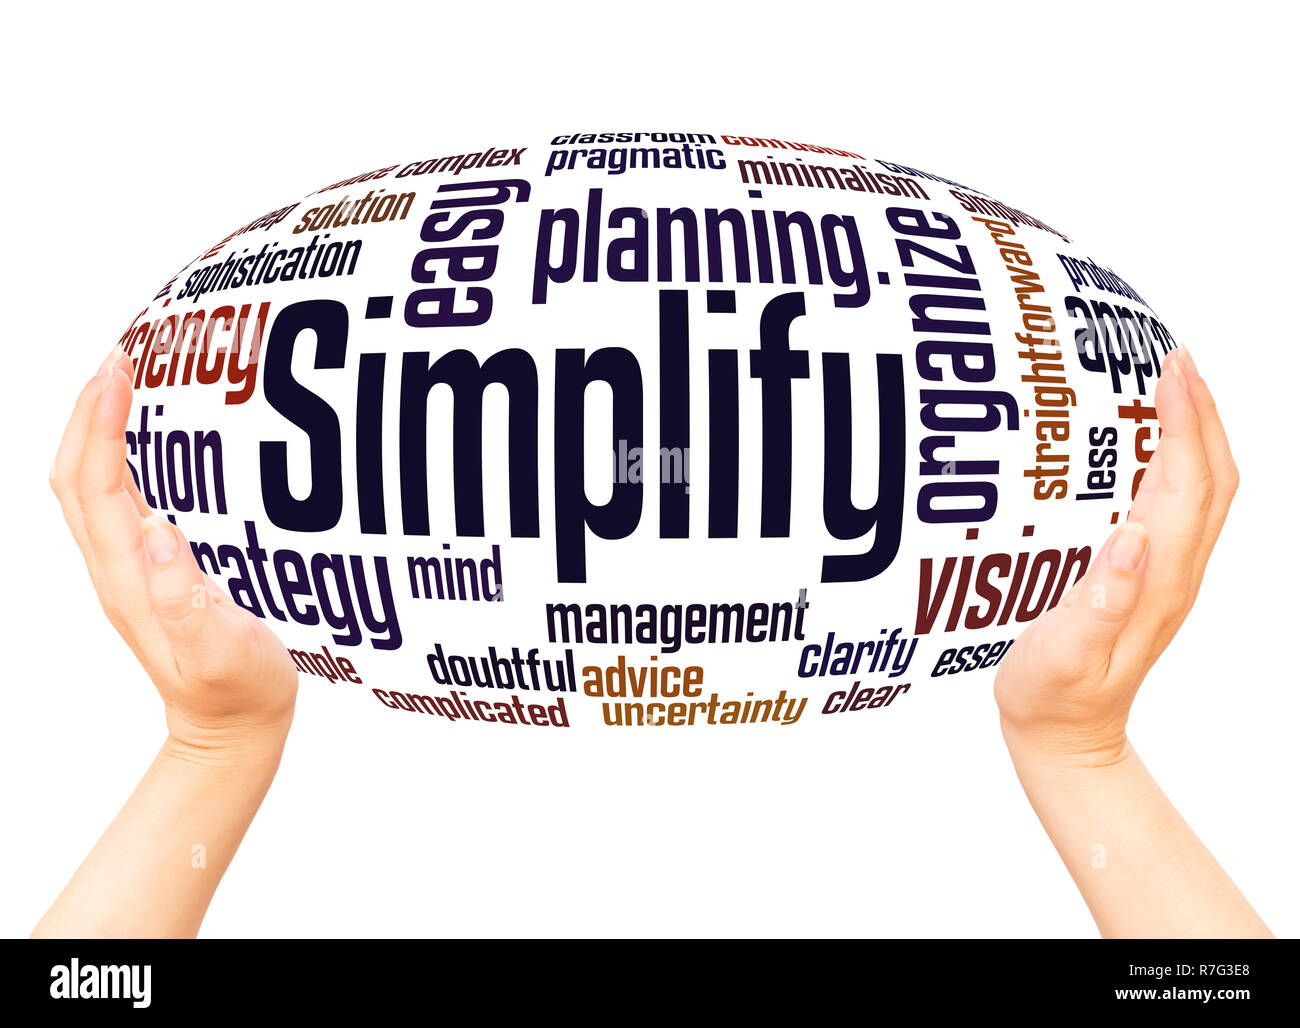 Simplify word cloud hand sphere concept on white background. - Stock Image